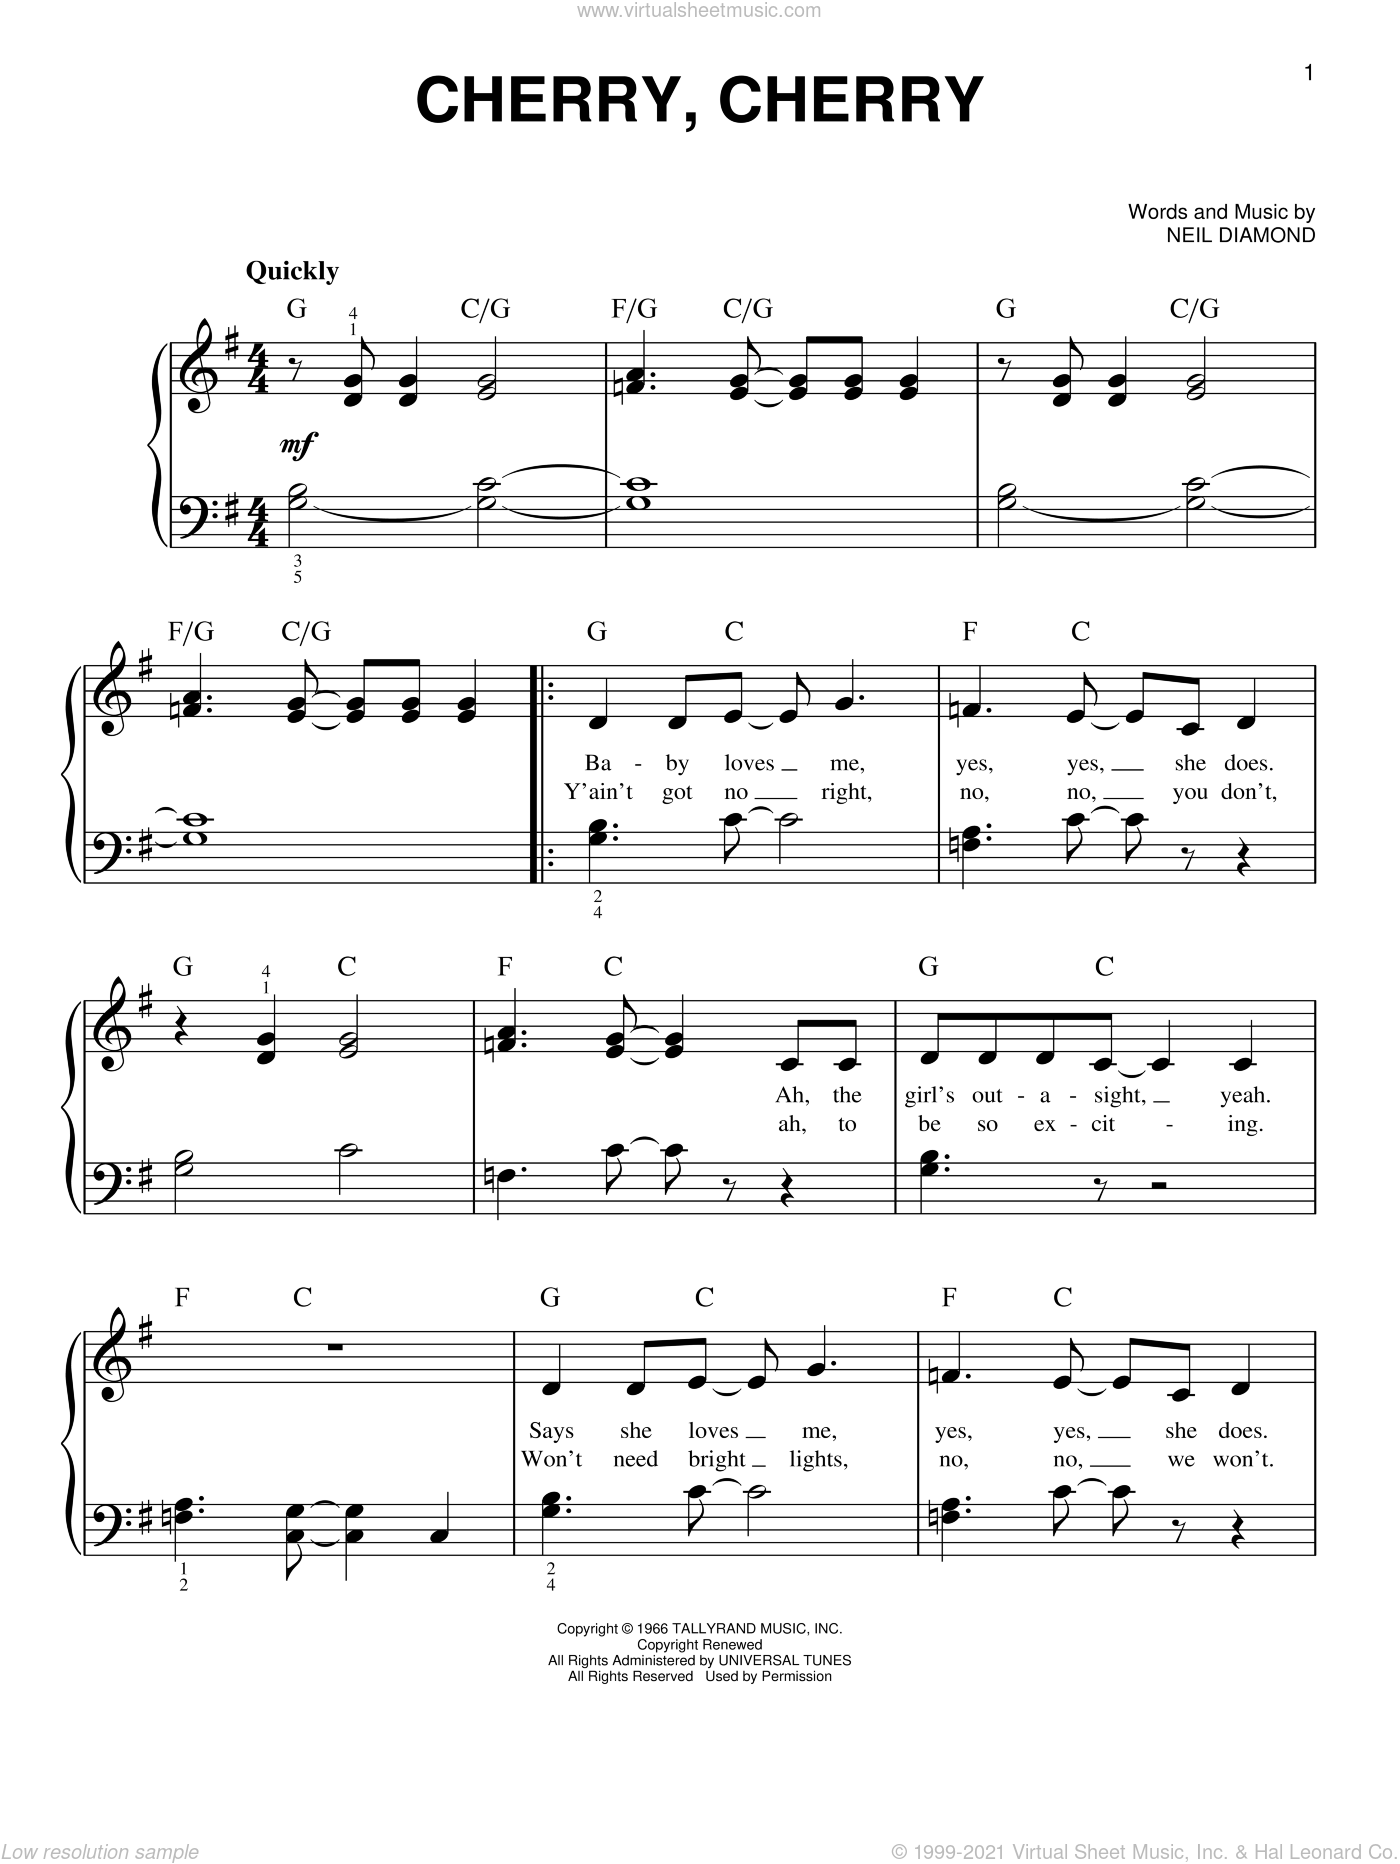 Cherry, Cherry sheet music for piano solo by Neil Diamond, easy skill level